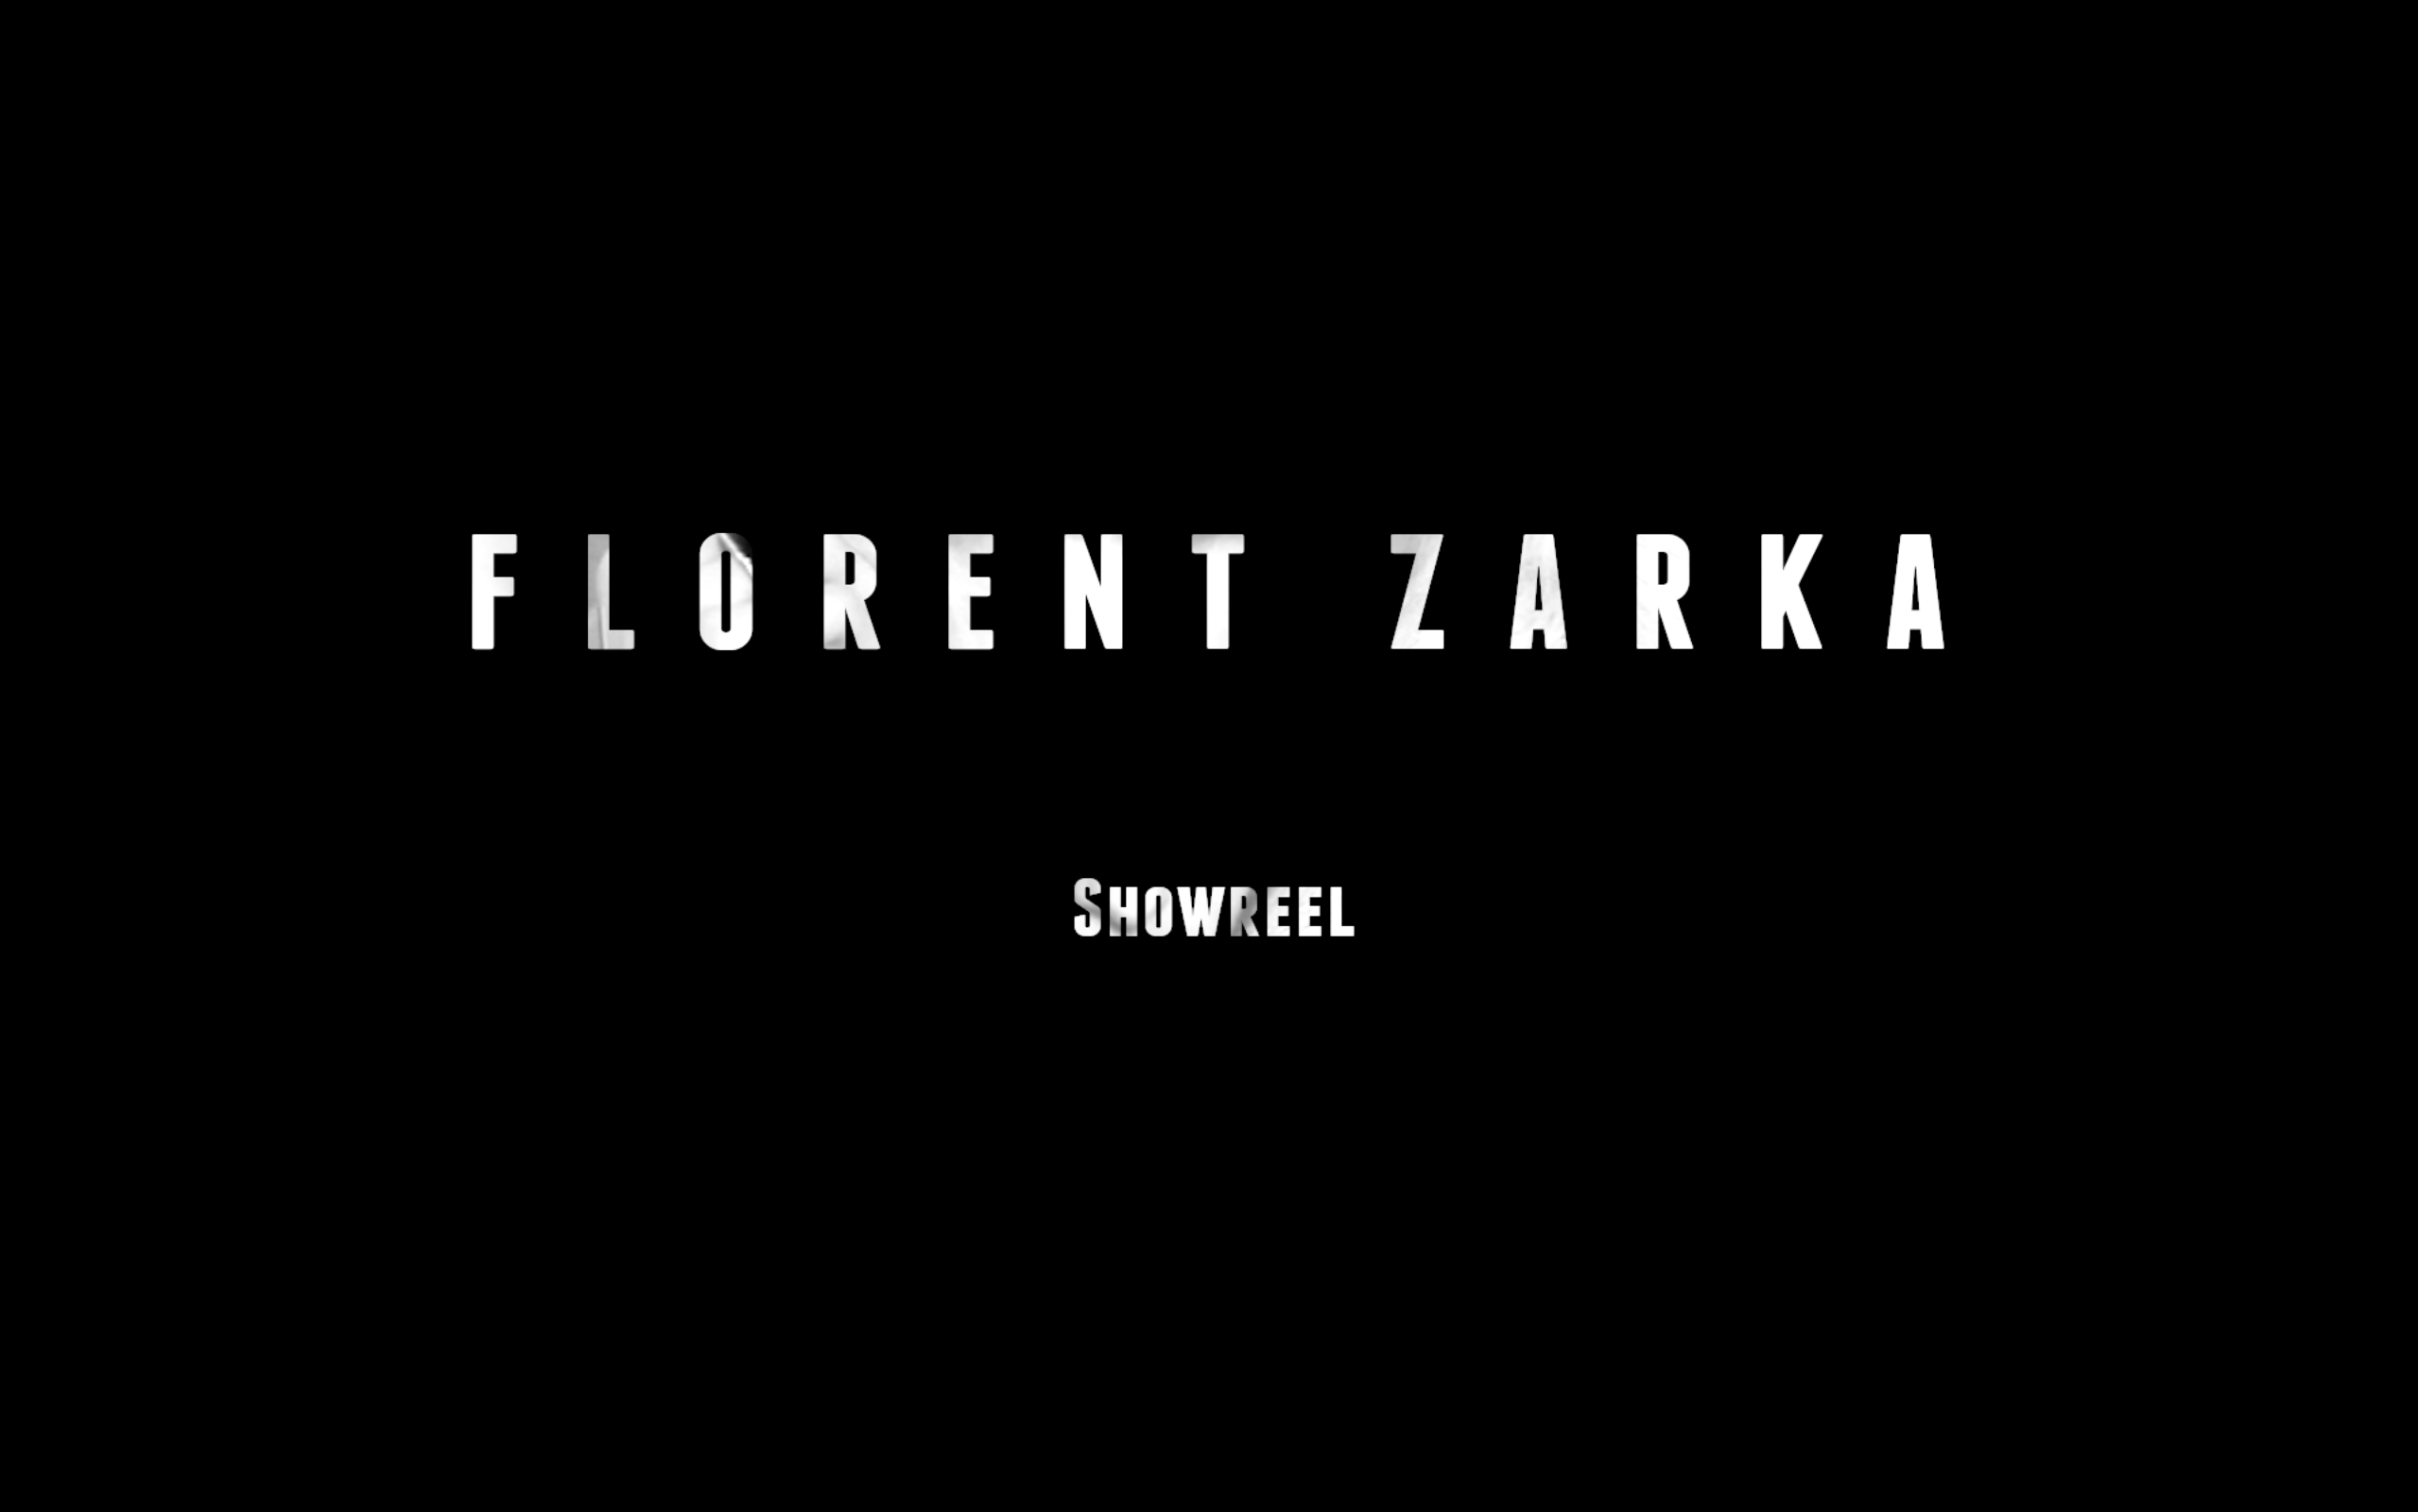 FLORENT ZARKA SHOWREEl